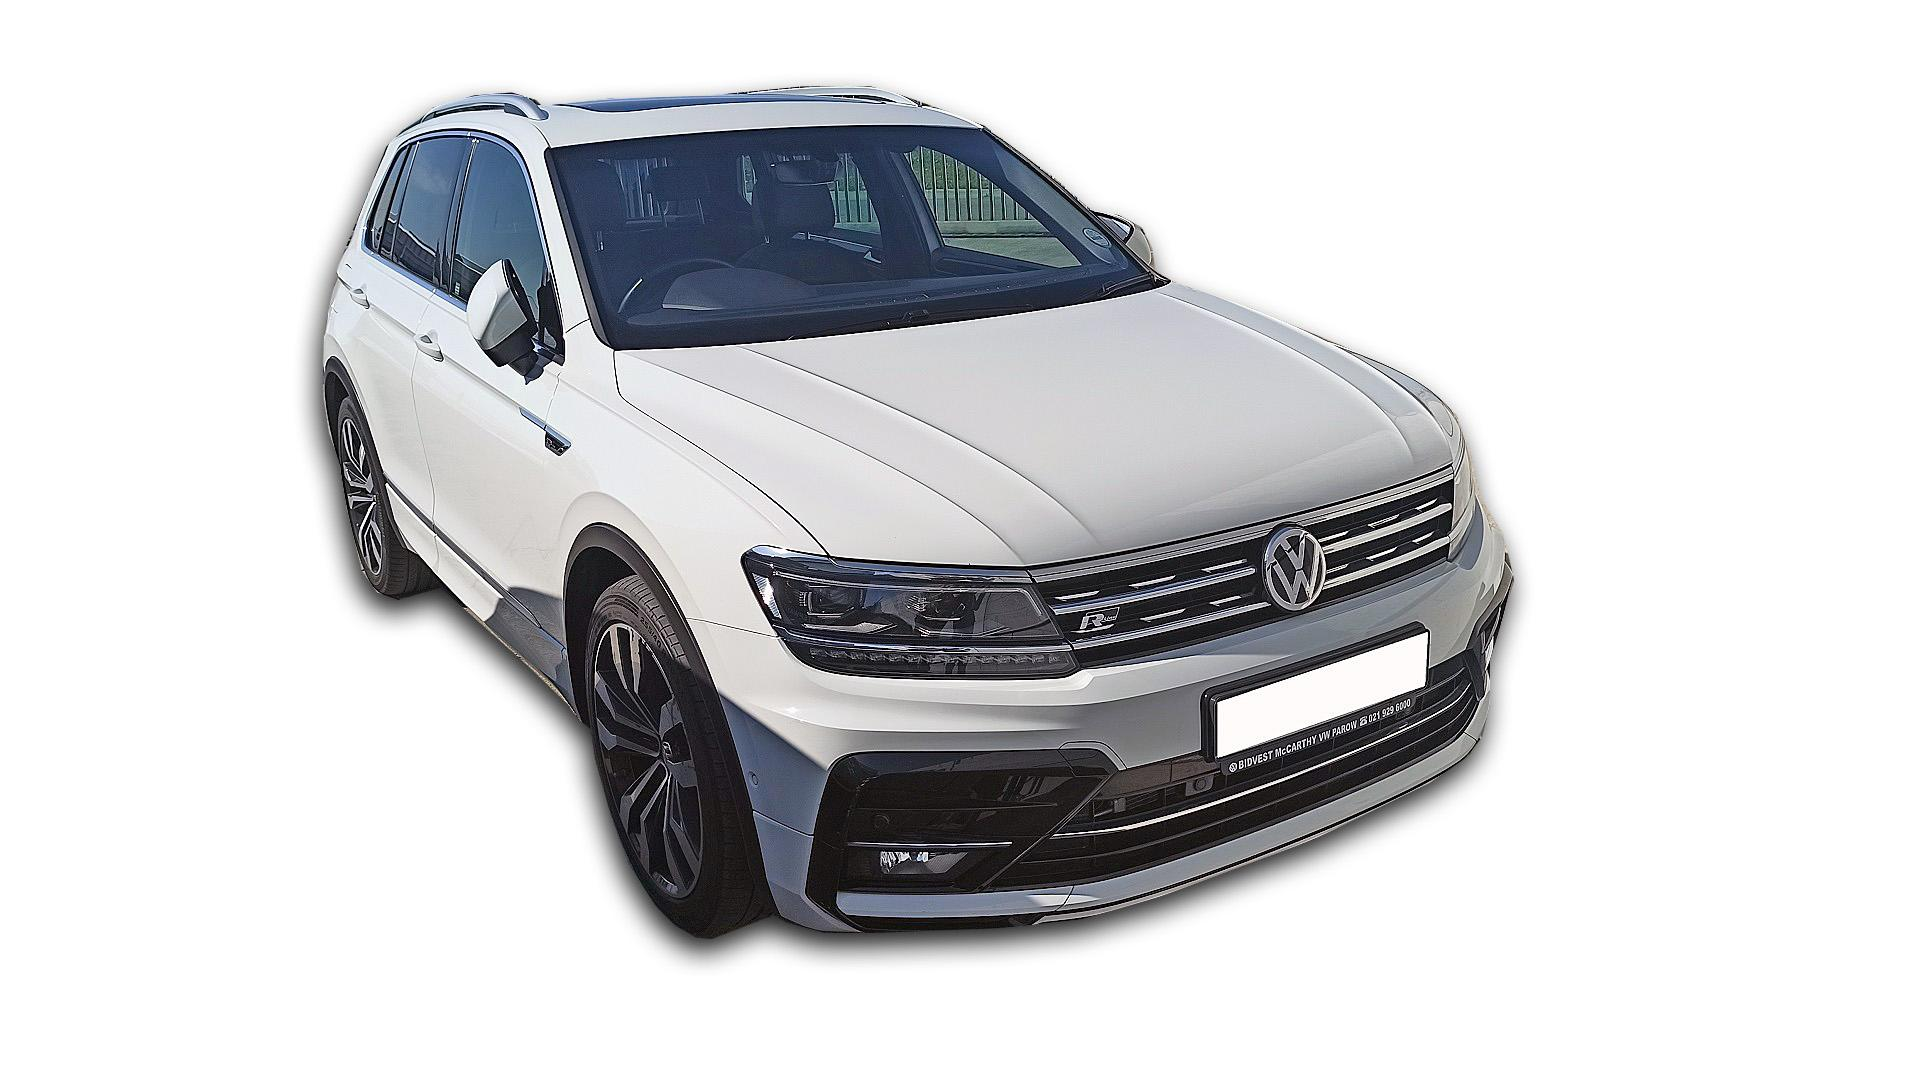 VW Tiguan 2.0 Tsi High